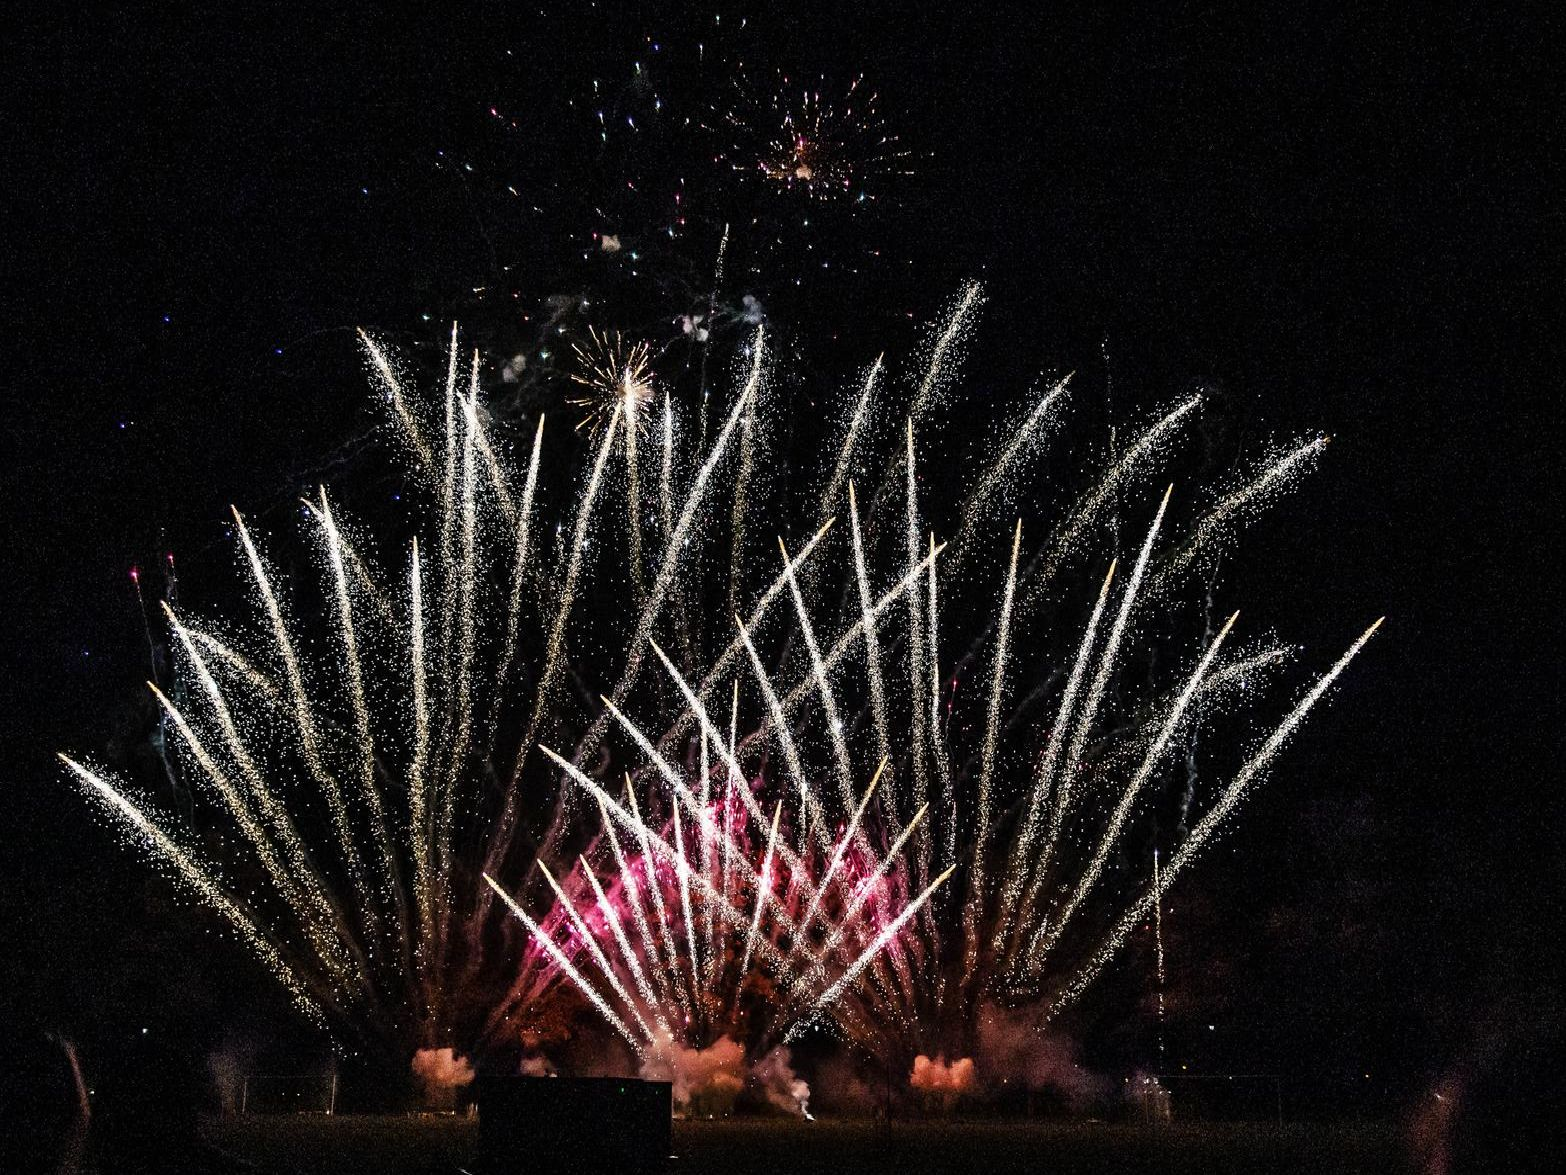 Fireworks at The Racecourse